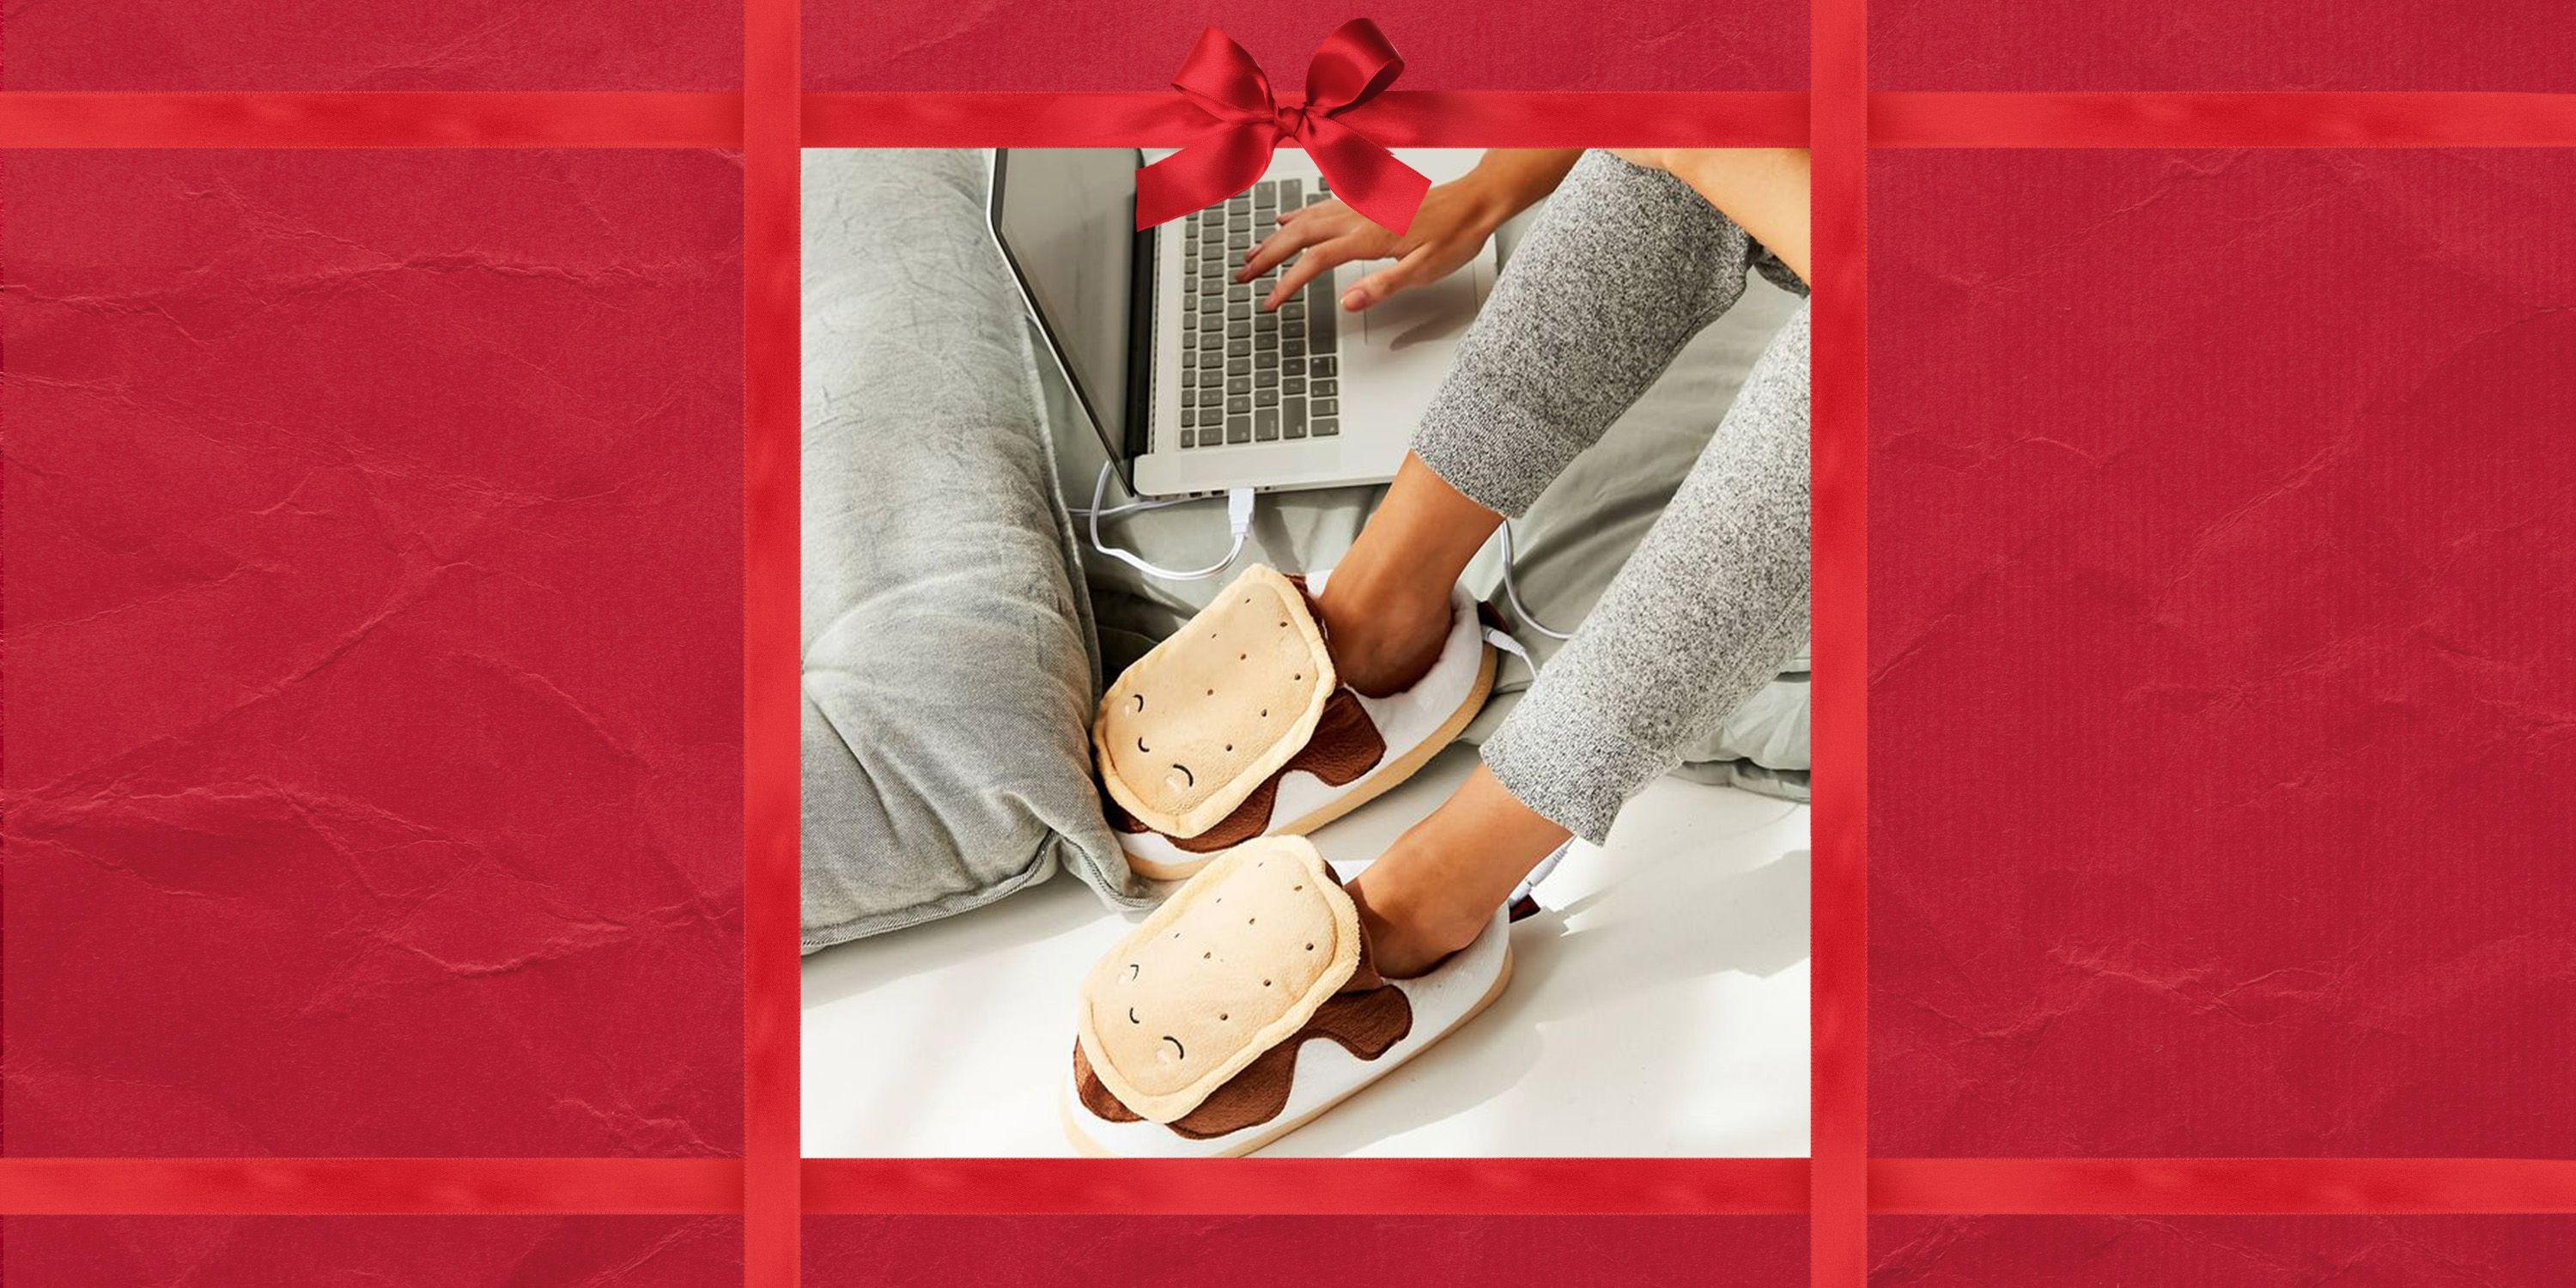 e01cdffeaffe 20 Gifts For People Who Are Always Cold - Cozy Gift Guide